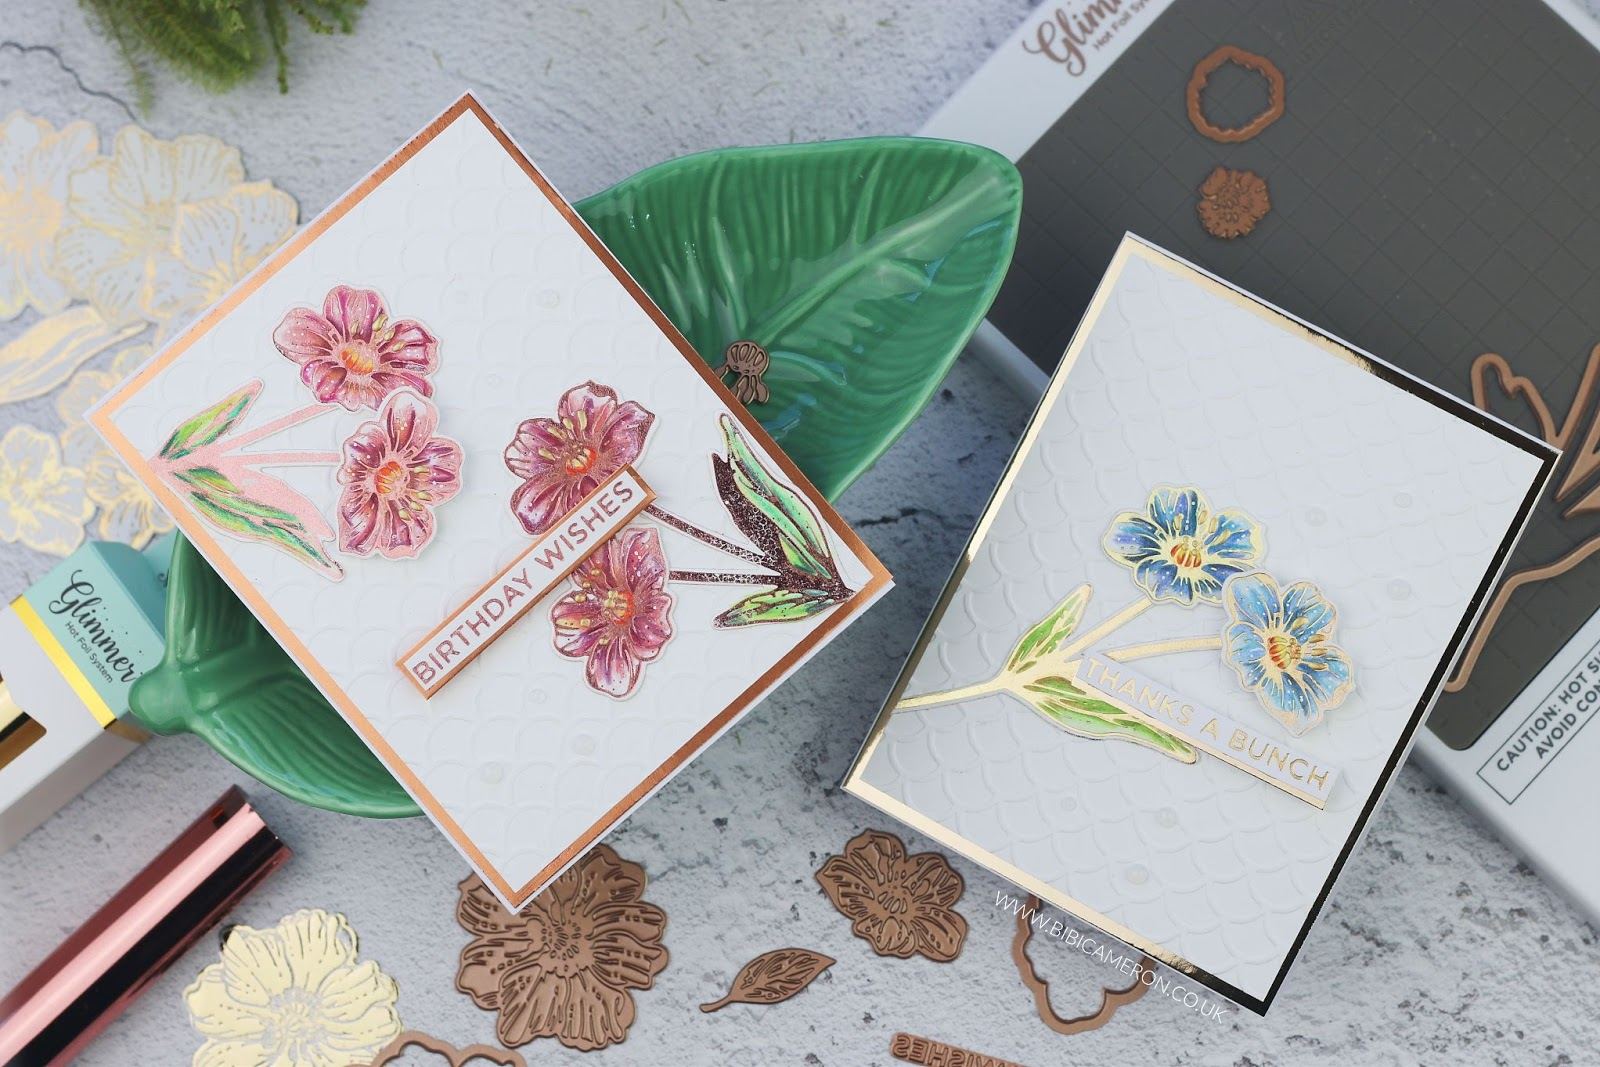 Spellbinders Glimmer Hot Foil kit of the Month April 2019 | Post #2